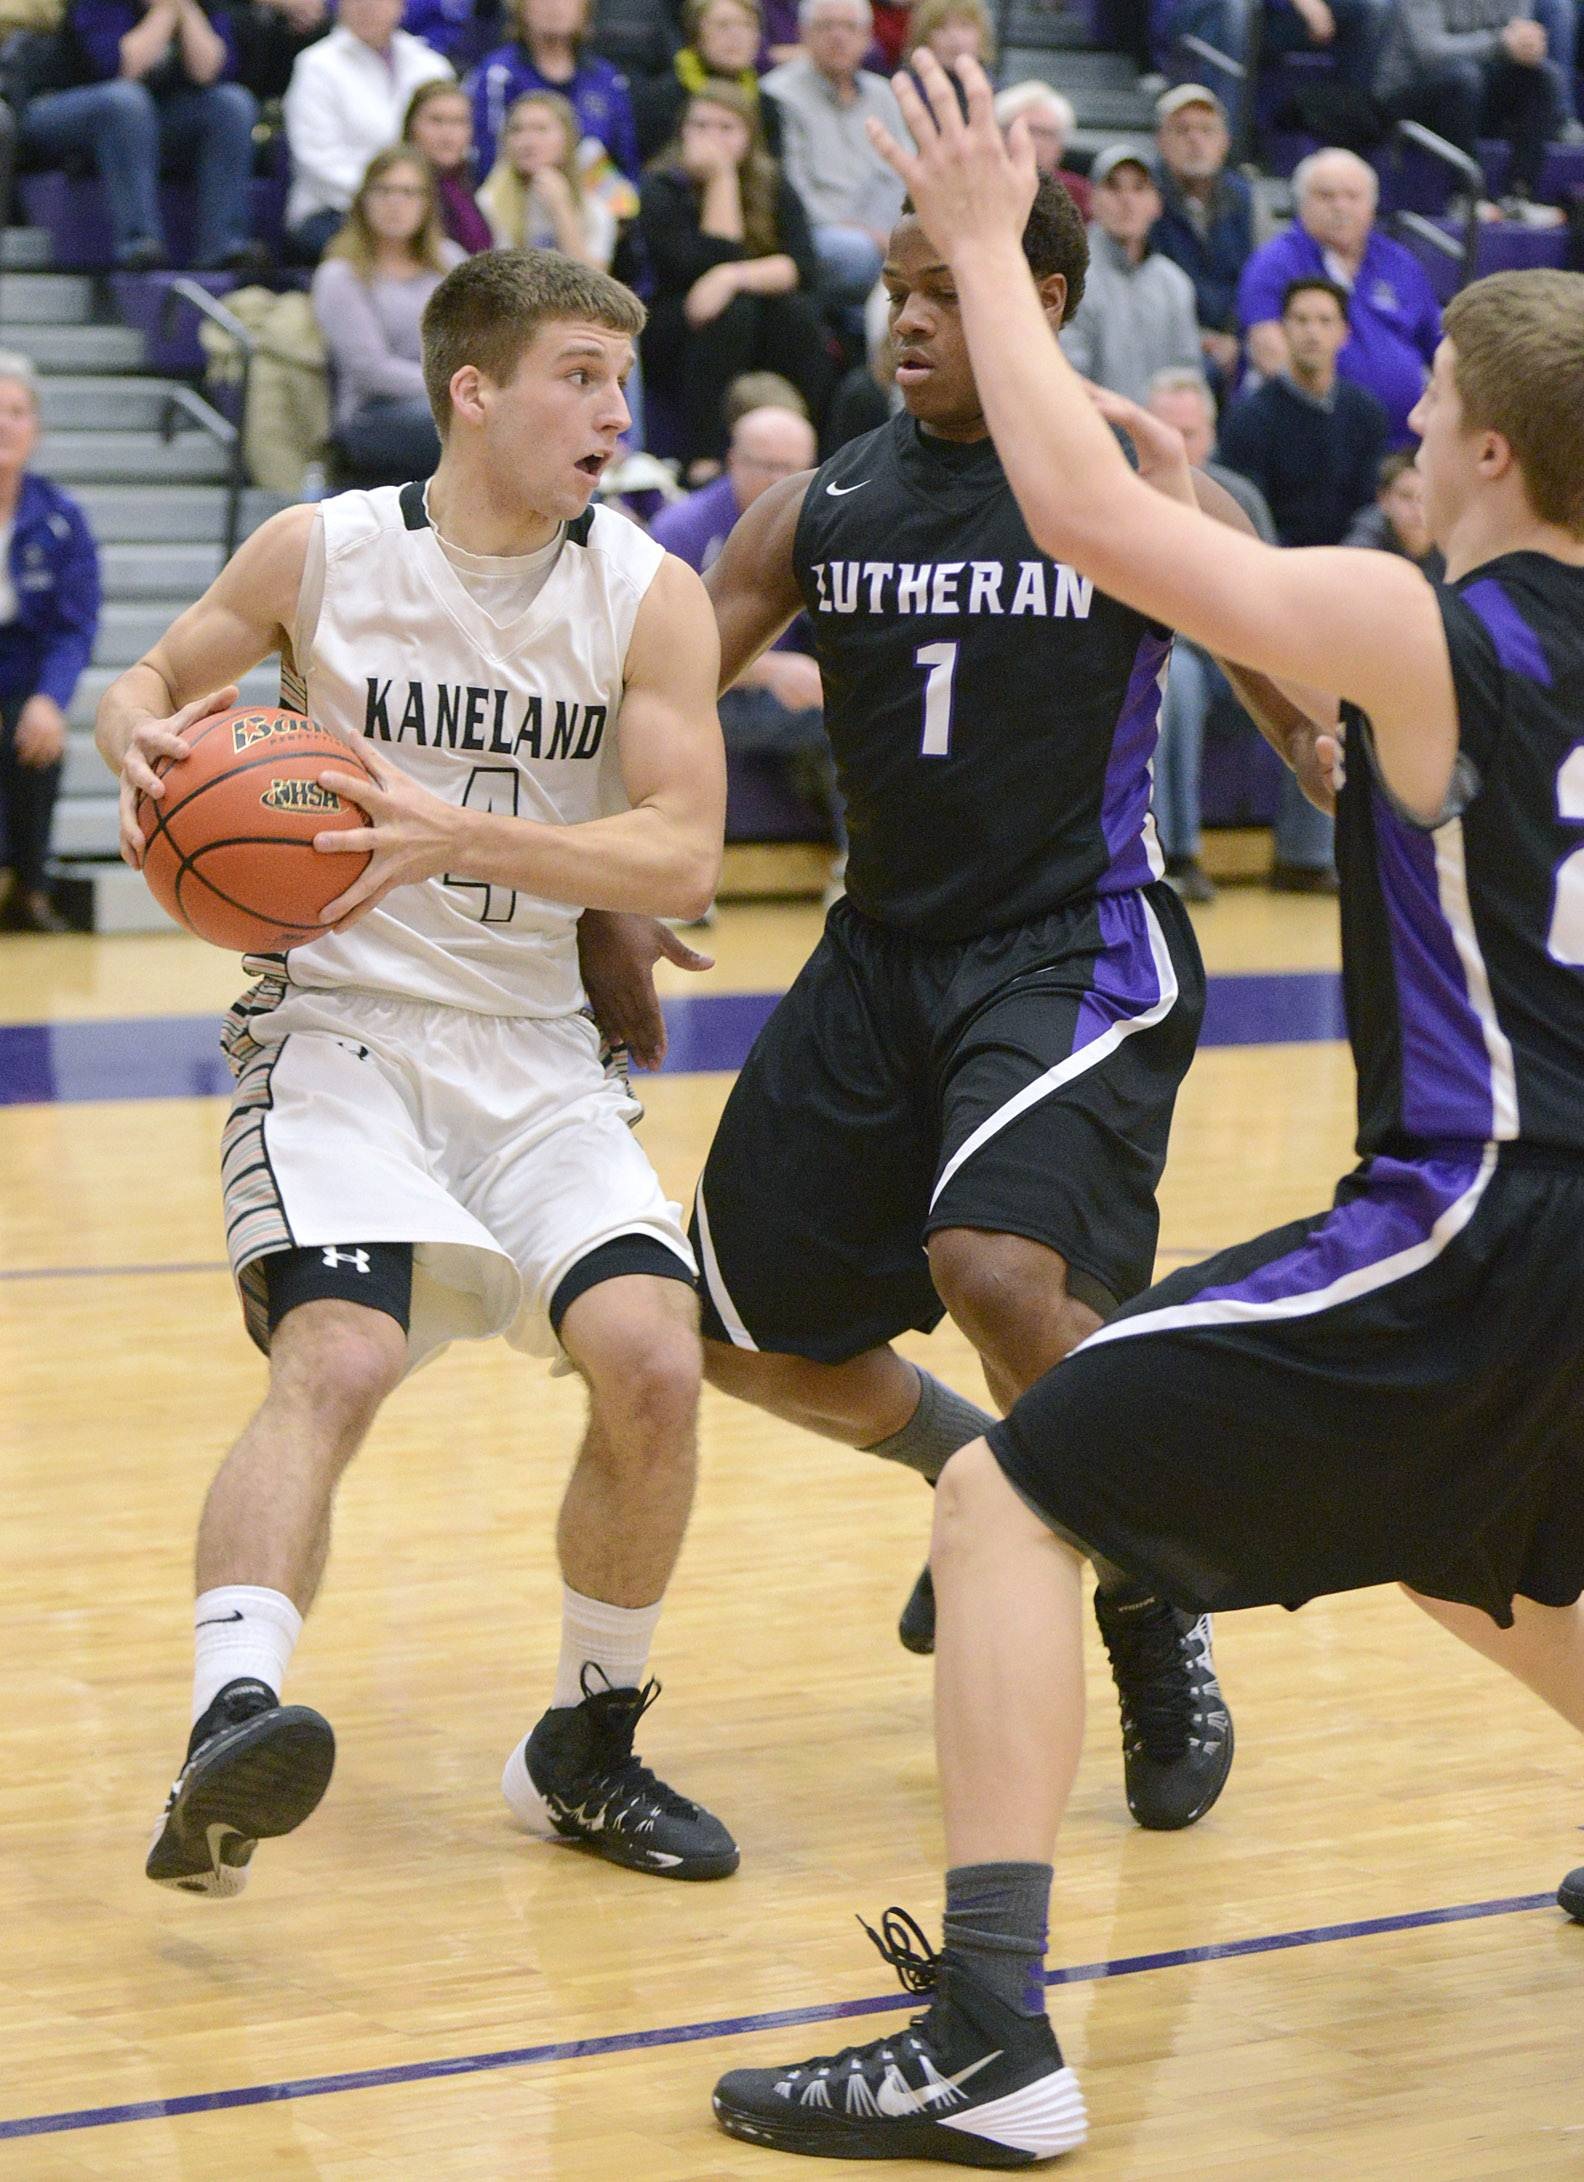 Kaneland's Drew David looks to pass around a block by Rockford Lutheran's James Robinson and Joseph Kellen in the first quarter .